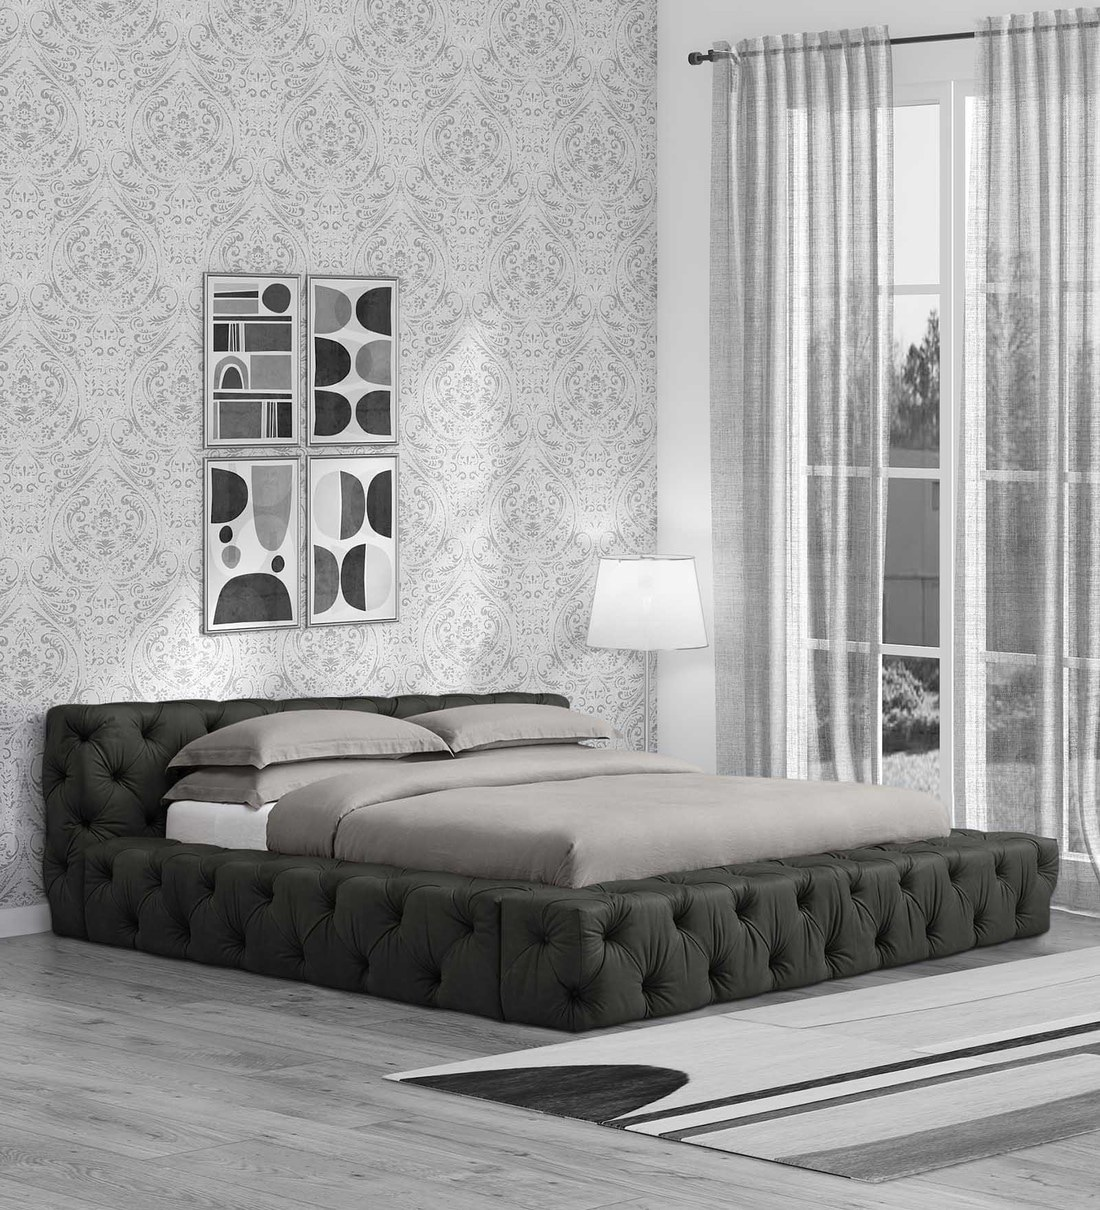 Buy Exquisite King Size Upholstered Bed In Dark Grey Colour By Dreamzz Furniture Online King Size Upholstered Beds Beds Furniture Pepperfry Product